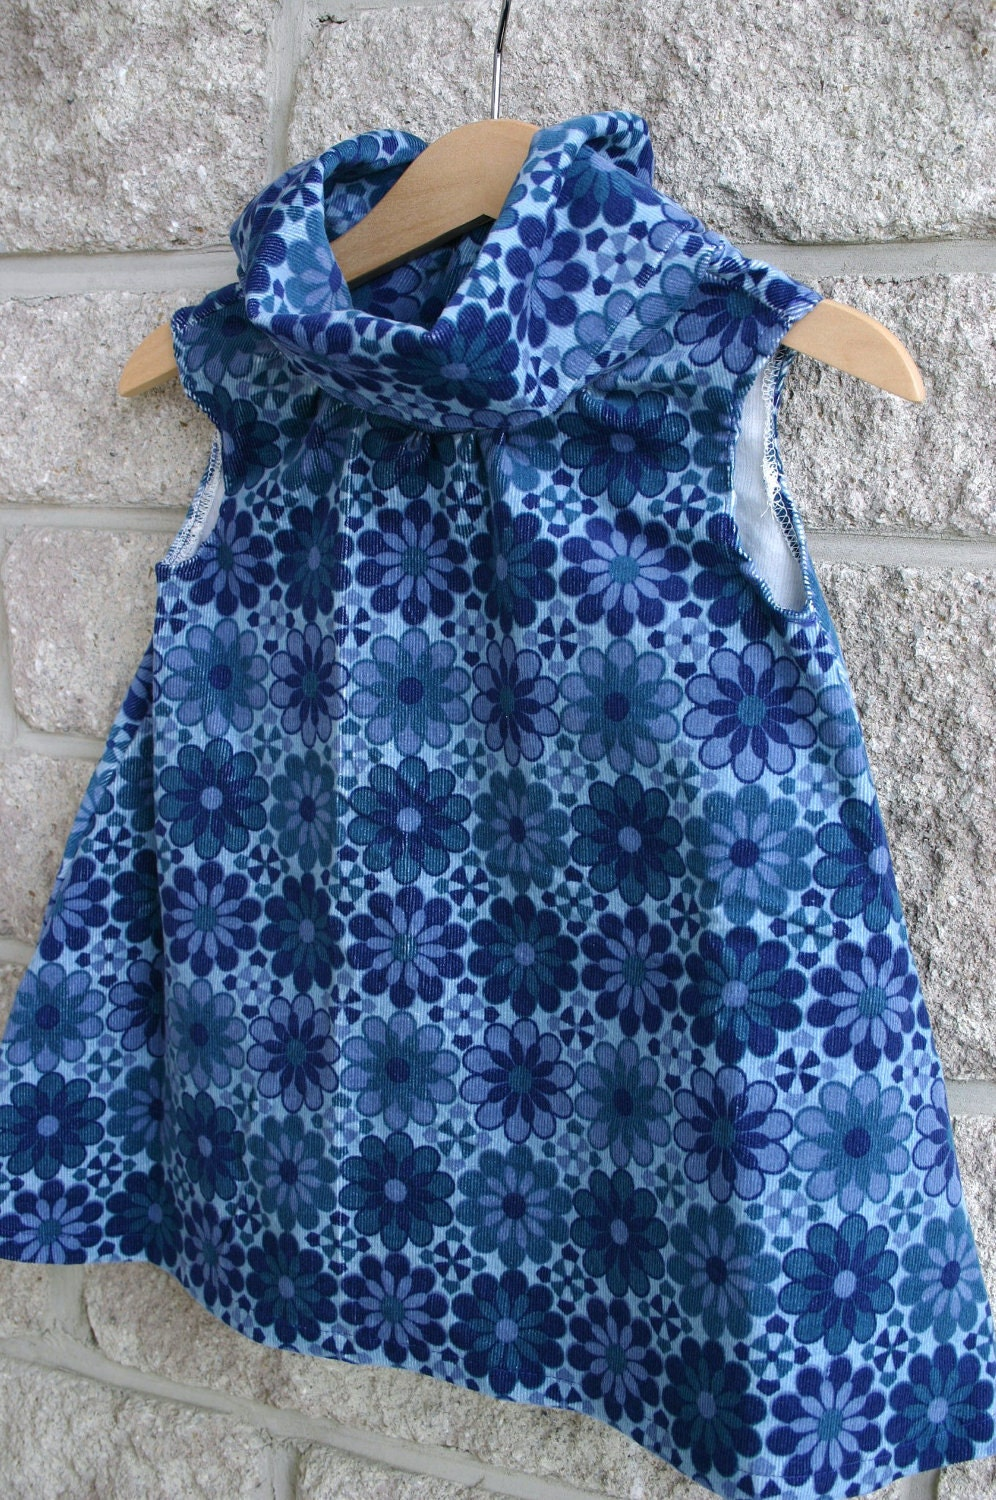 Posh Cowl Corduroy Dress in Blooming Blue, size 2T